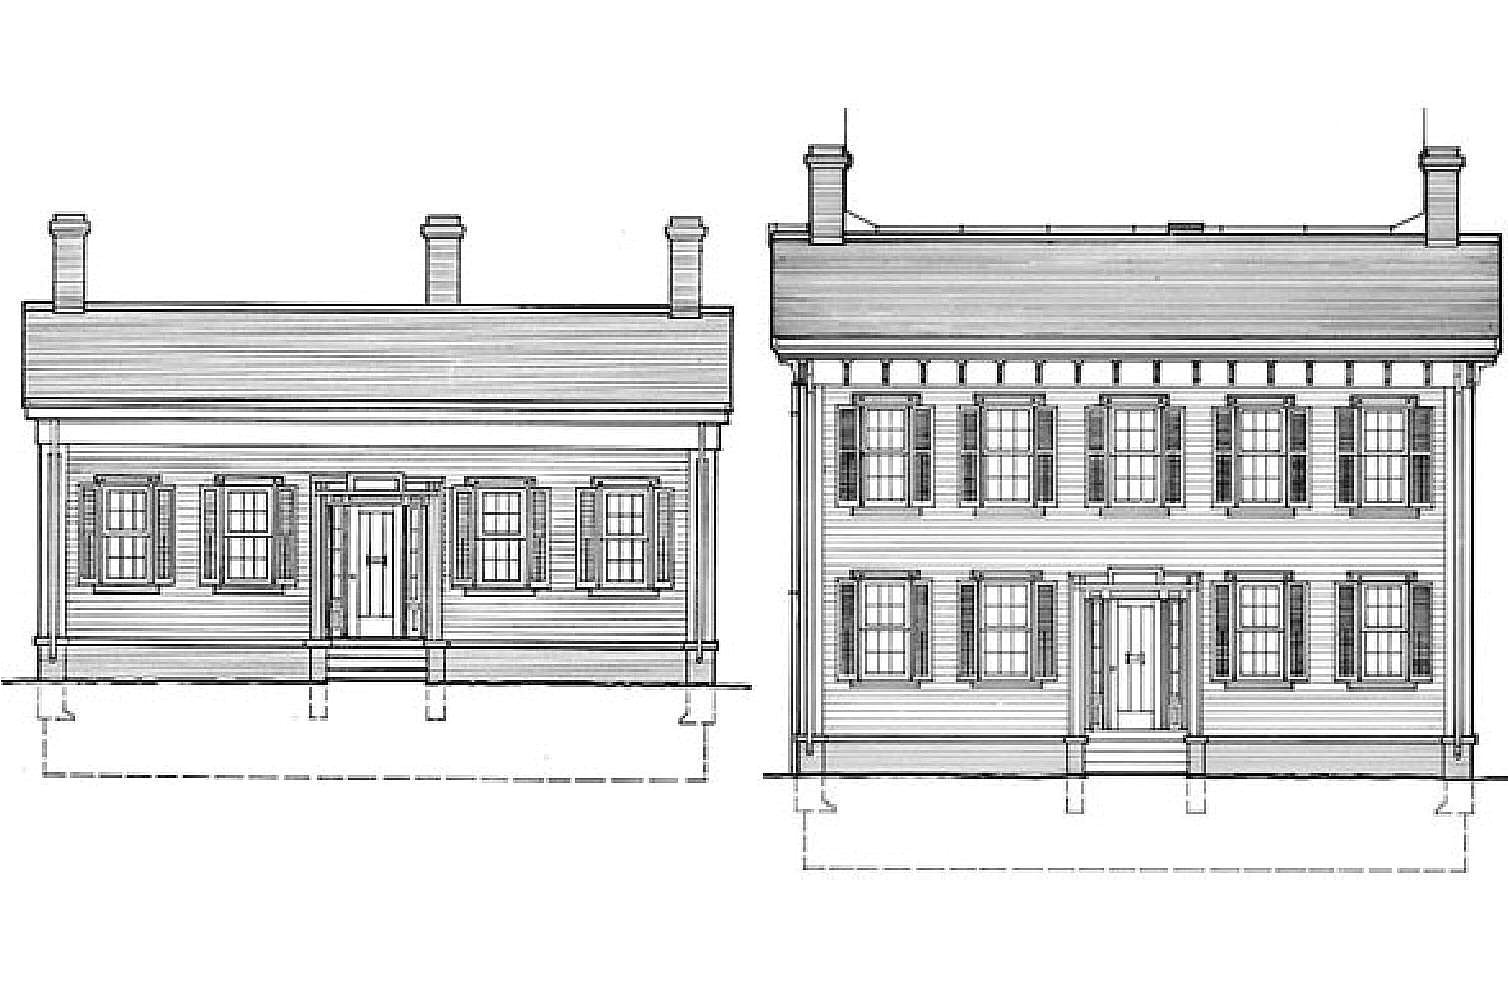 elevation drawings the lincoln home from one and a half story to